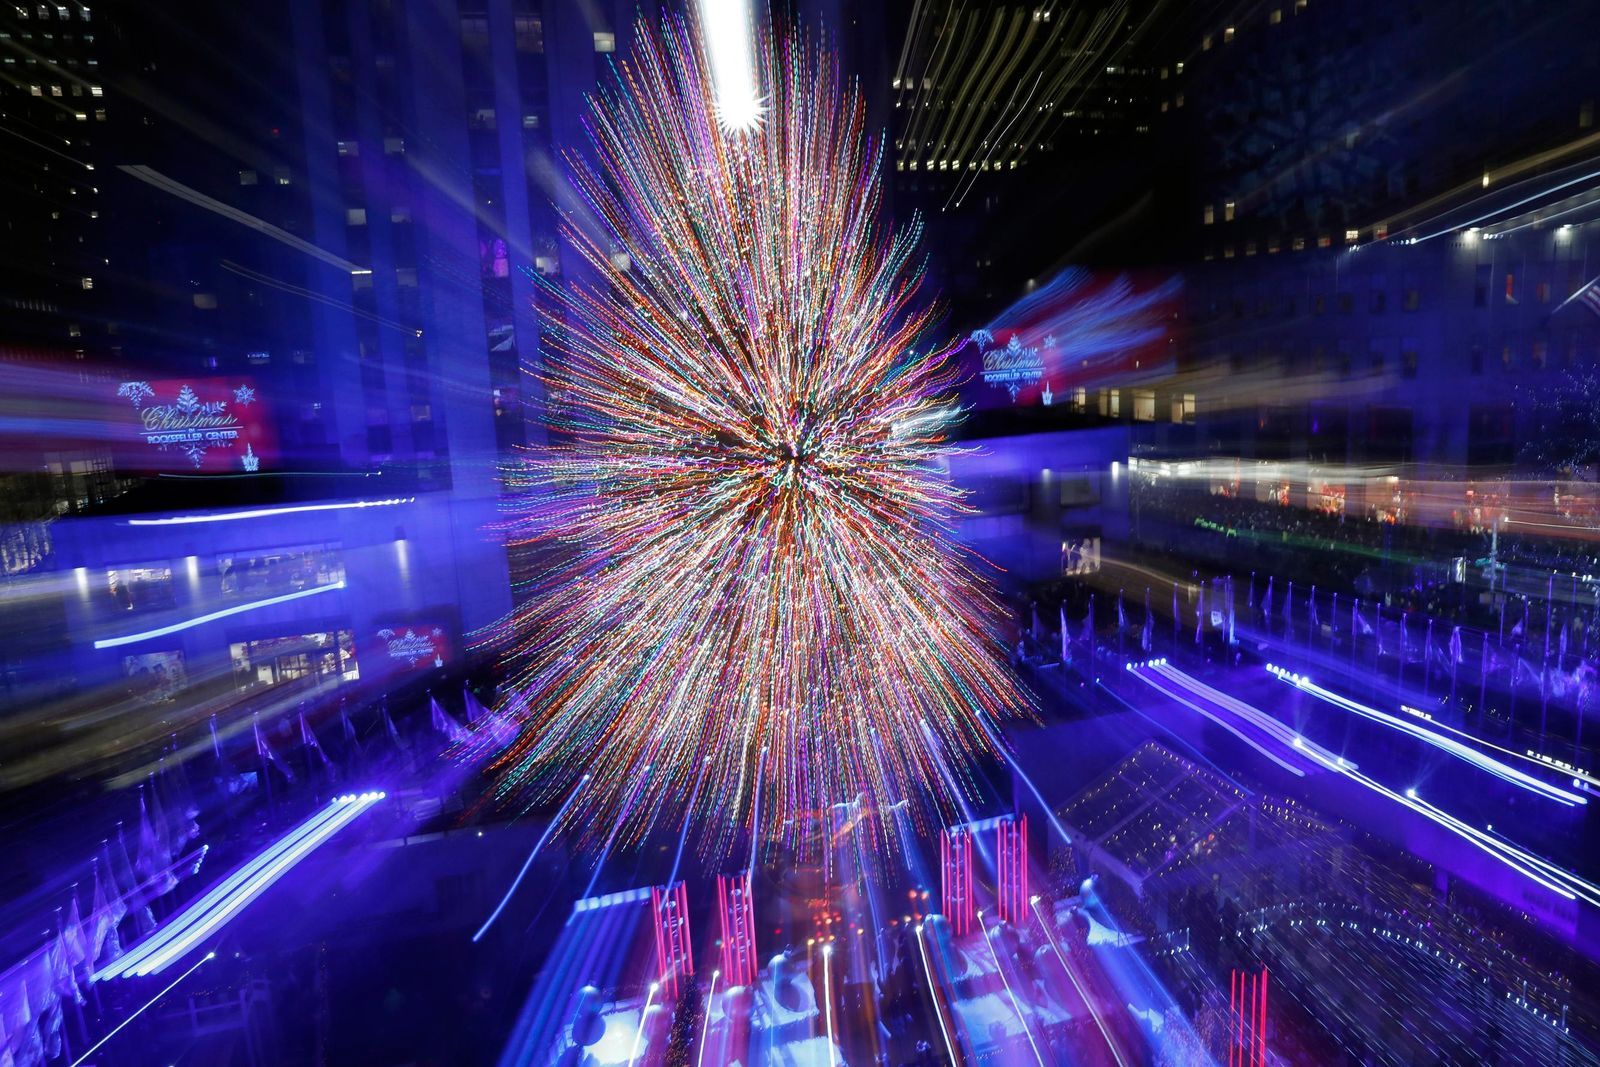 The Rockefeller Center Christmas Tree is shown in a time exposure in which the photographer's lens was zoomed at the 87th annual Rockefeller Center Christmas Tree lighting ceremony, Wednesday, Dec. 4, 2019, in New York. (AP Photo/Kathy Willens)